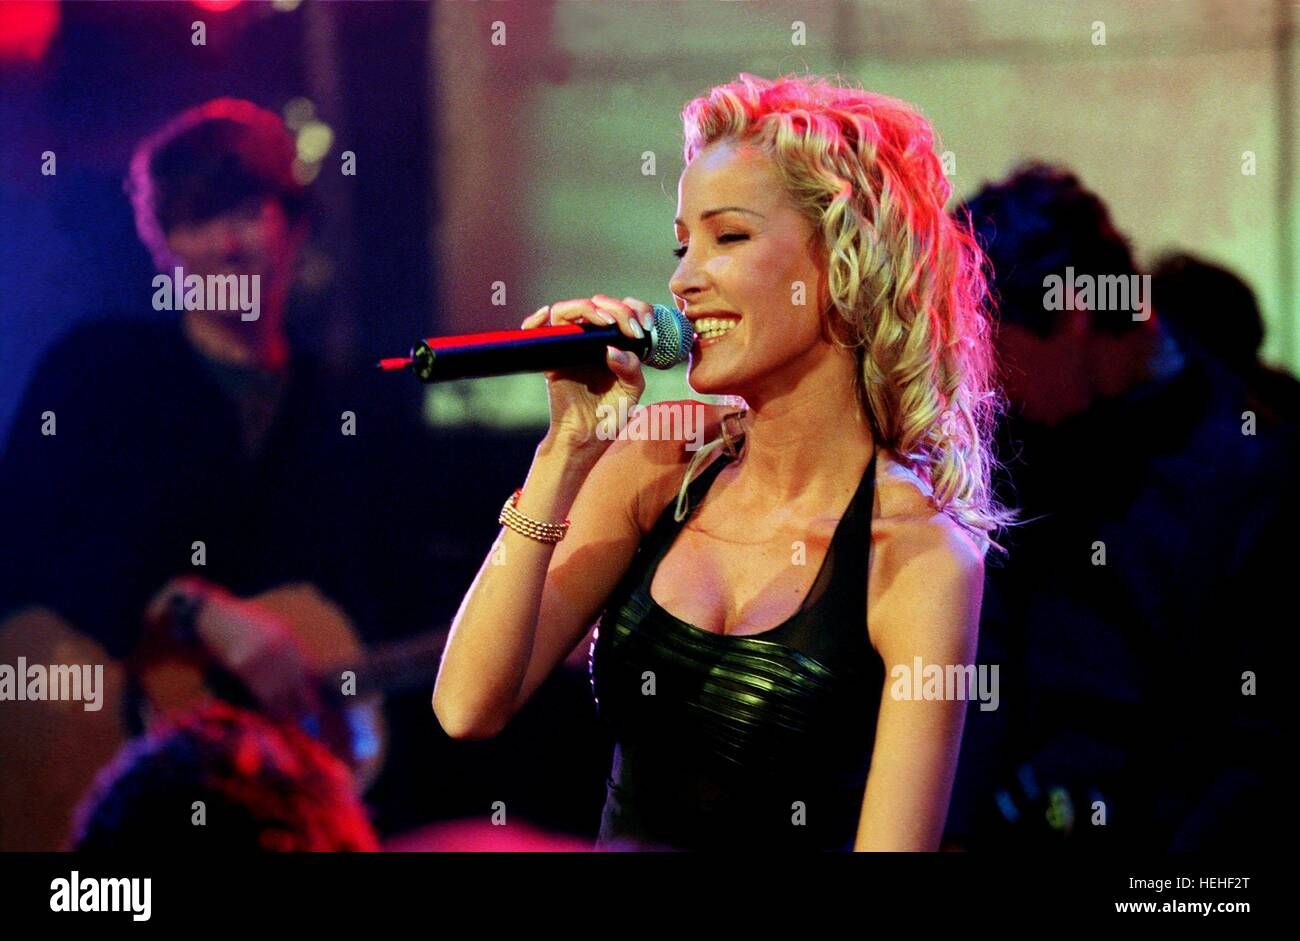 OPHELIE WINTER SINGER AND ACTRESS (1999) - Stock Image